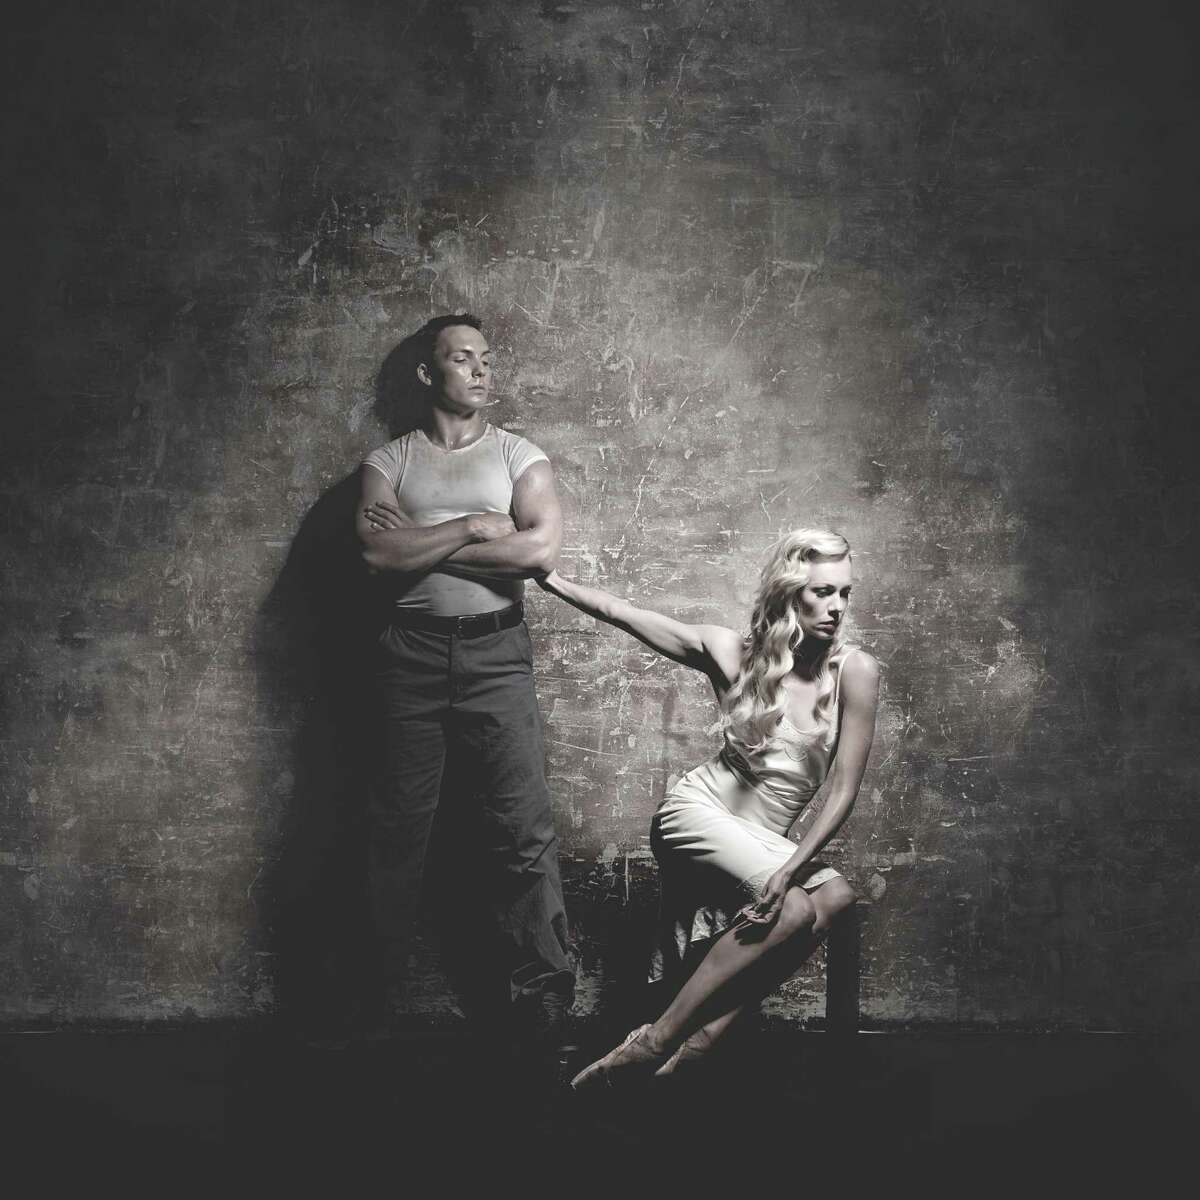 """Society for the Performing Arts has booked the Houston debut of Scottish Ballet in """"A Streetcar Named Desire"""" for its 2014-2015 season."""